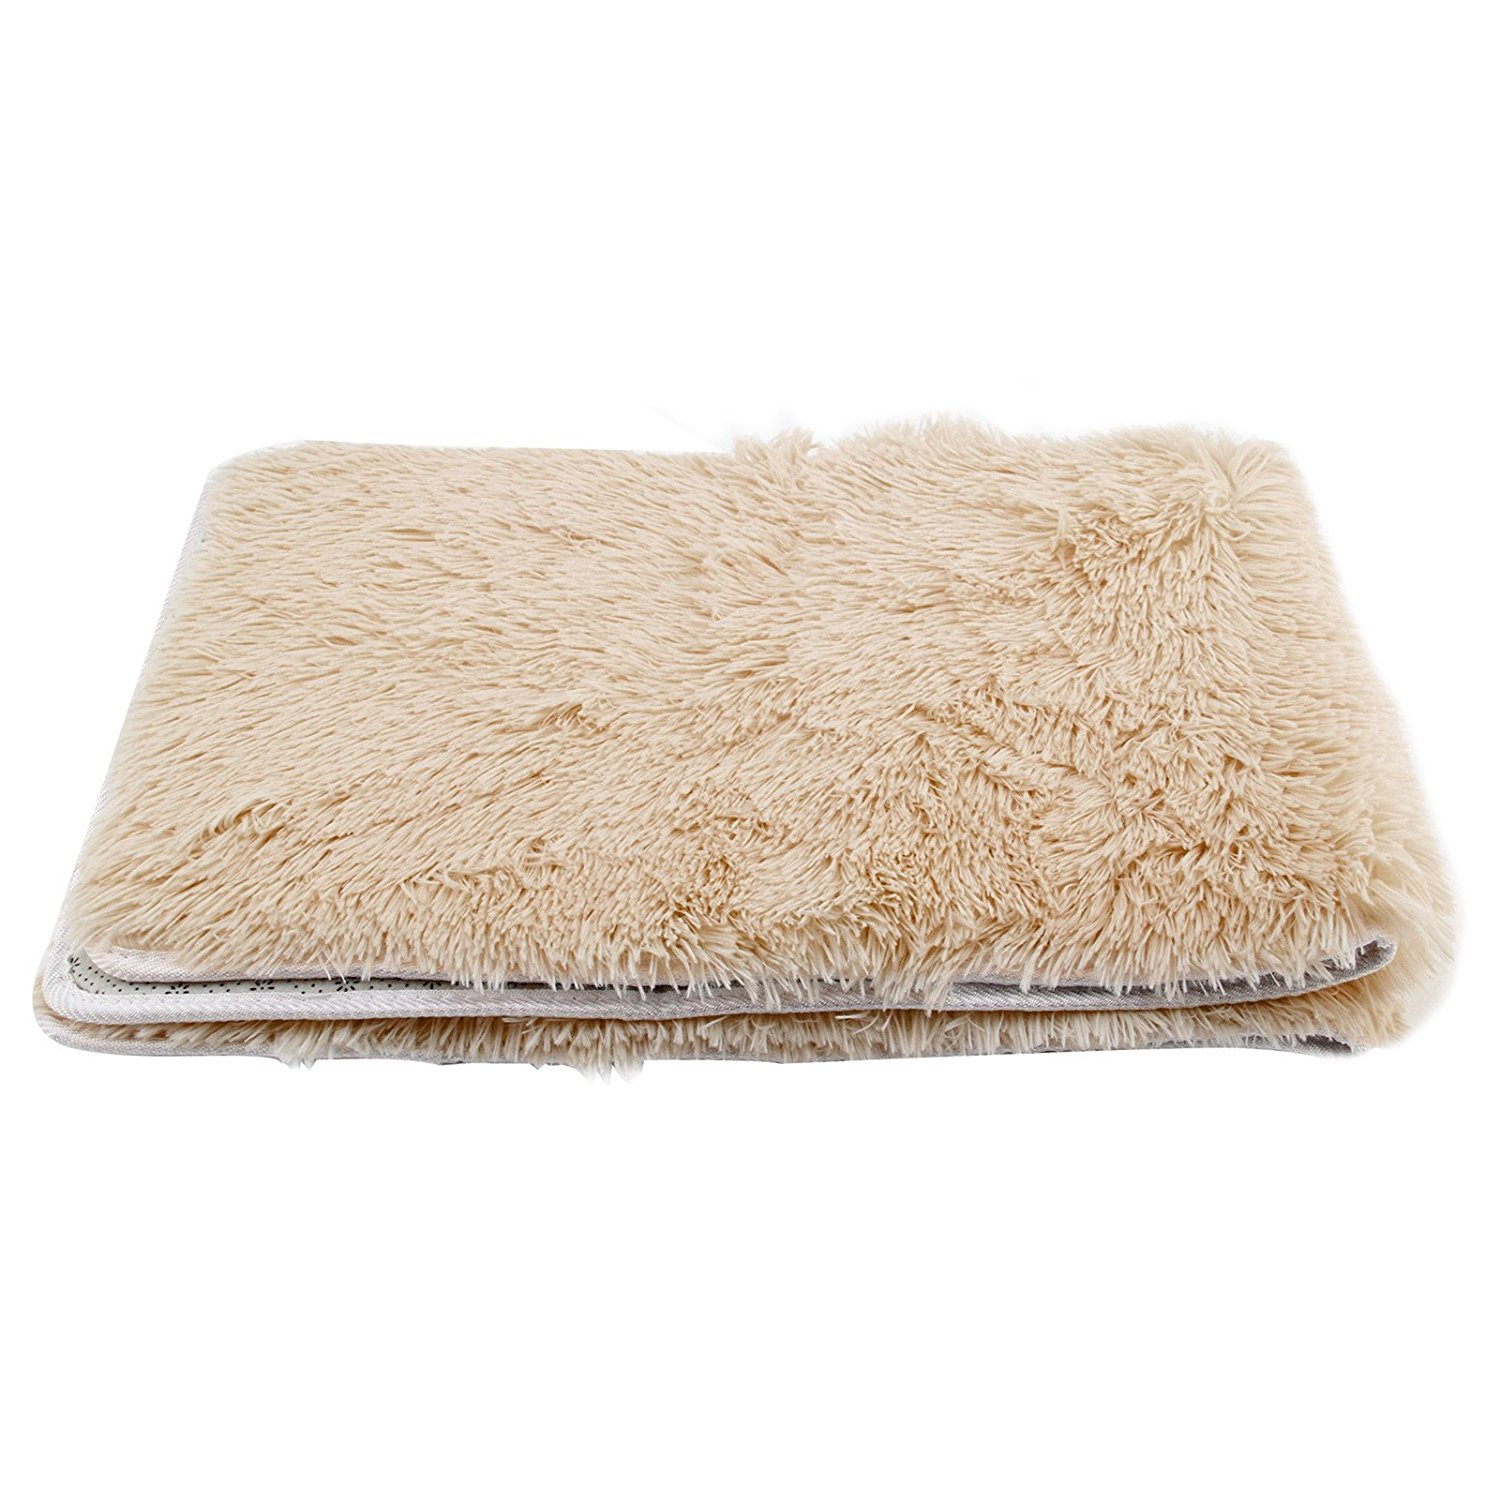 MultiWare Fluffy Area Rugs Anti Skid Yoga Carpet For Living Room Bedroom Brown120cm X 80cm Amazoncouk Kitchen Home